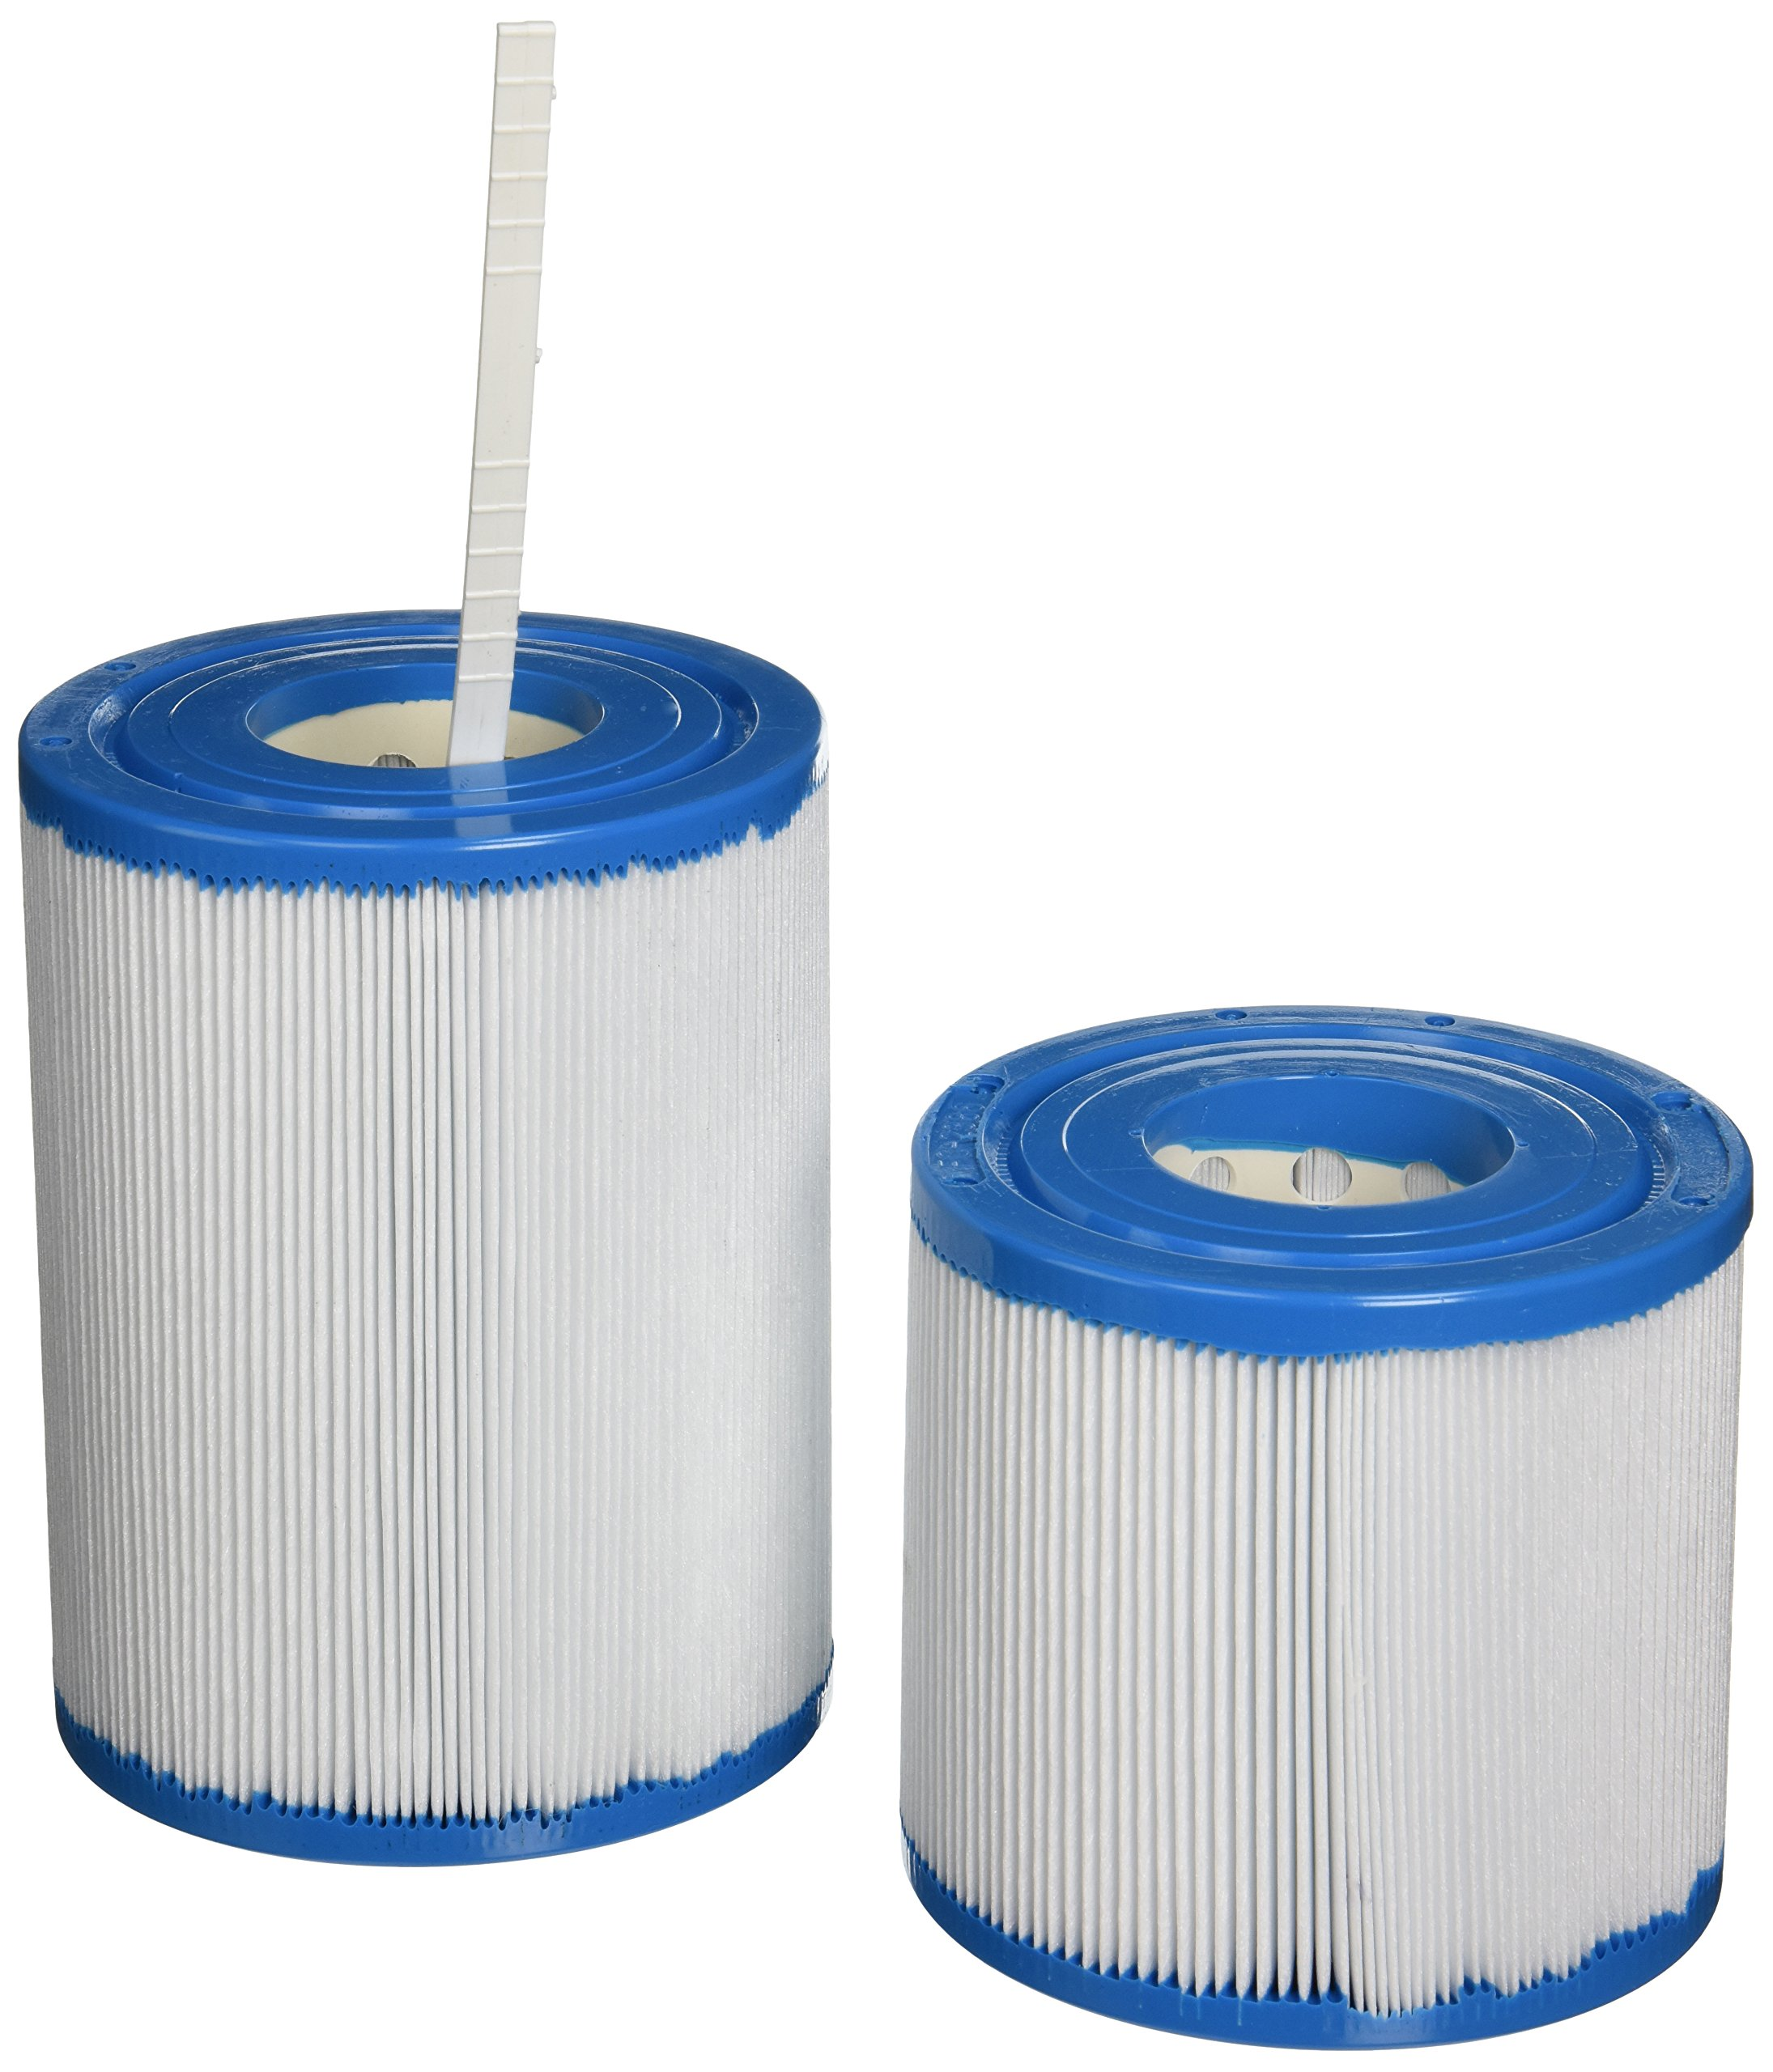 Filbur FC-2388 Antimicrobial Replacement Filter Cartridge for Rainbow/Pentair DSF Combo Pool and Spa Filter